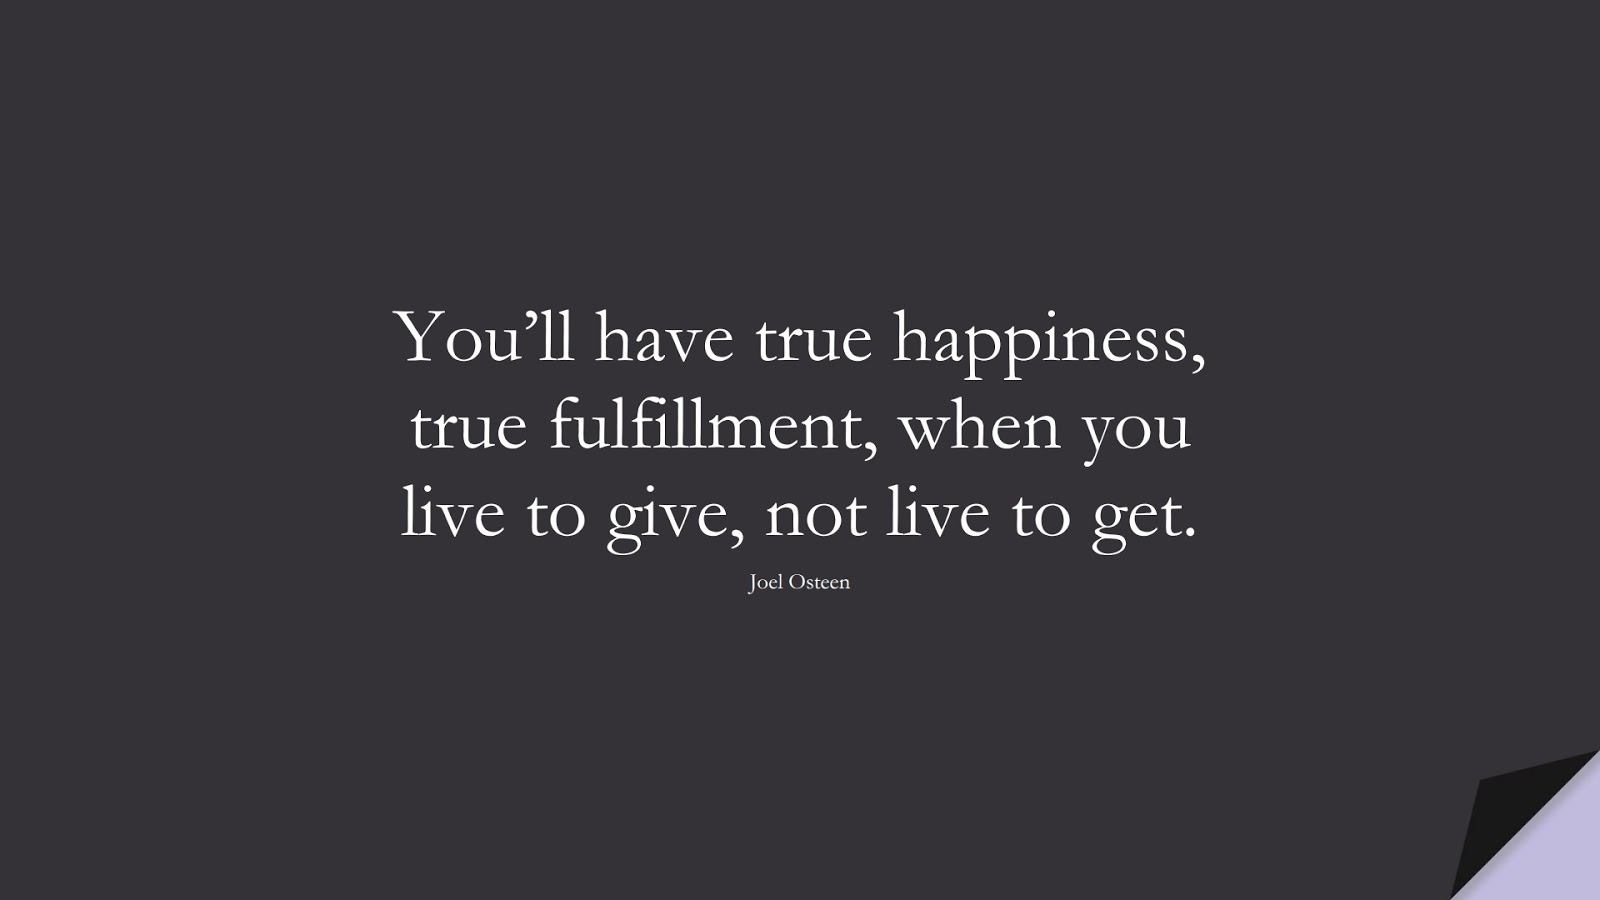 You'll have true happiness, true fulfillment, when you live to give, not live to get. (Joel Osteen);  #PositiveQuotes